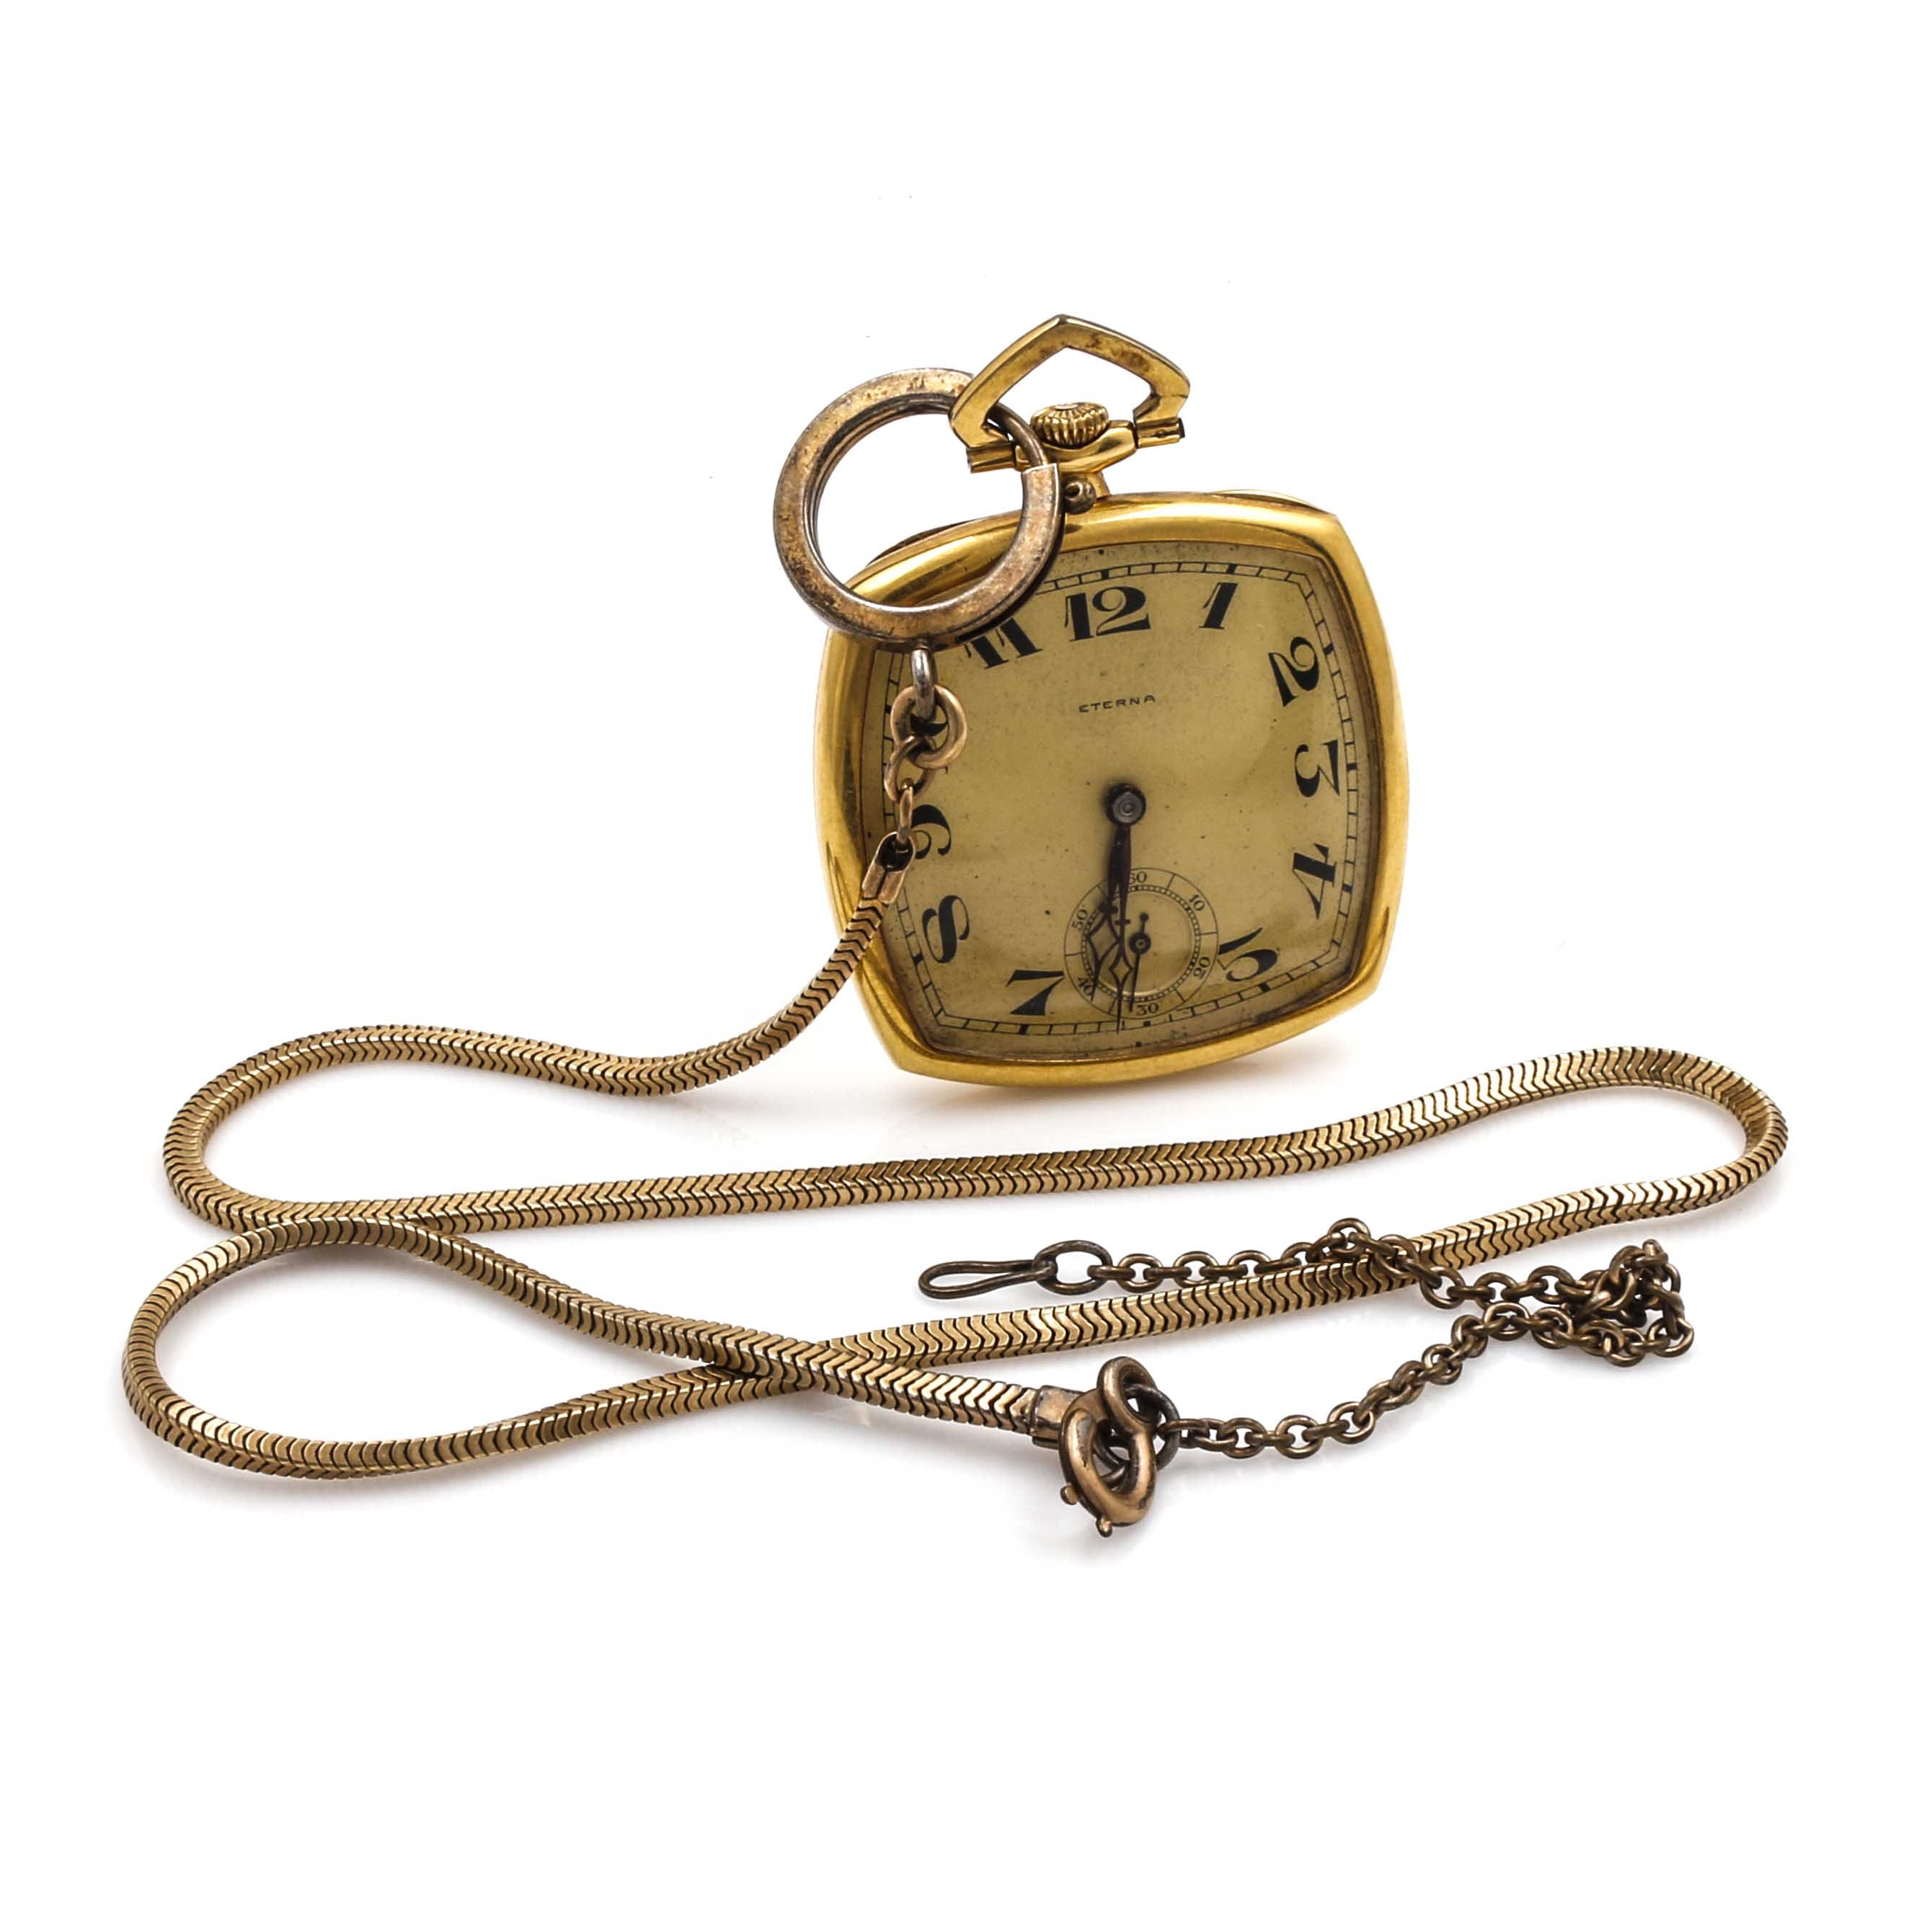 Eterna Rounded Square Gold Tone Pocket Watch and Fob